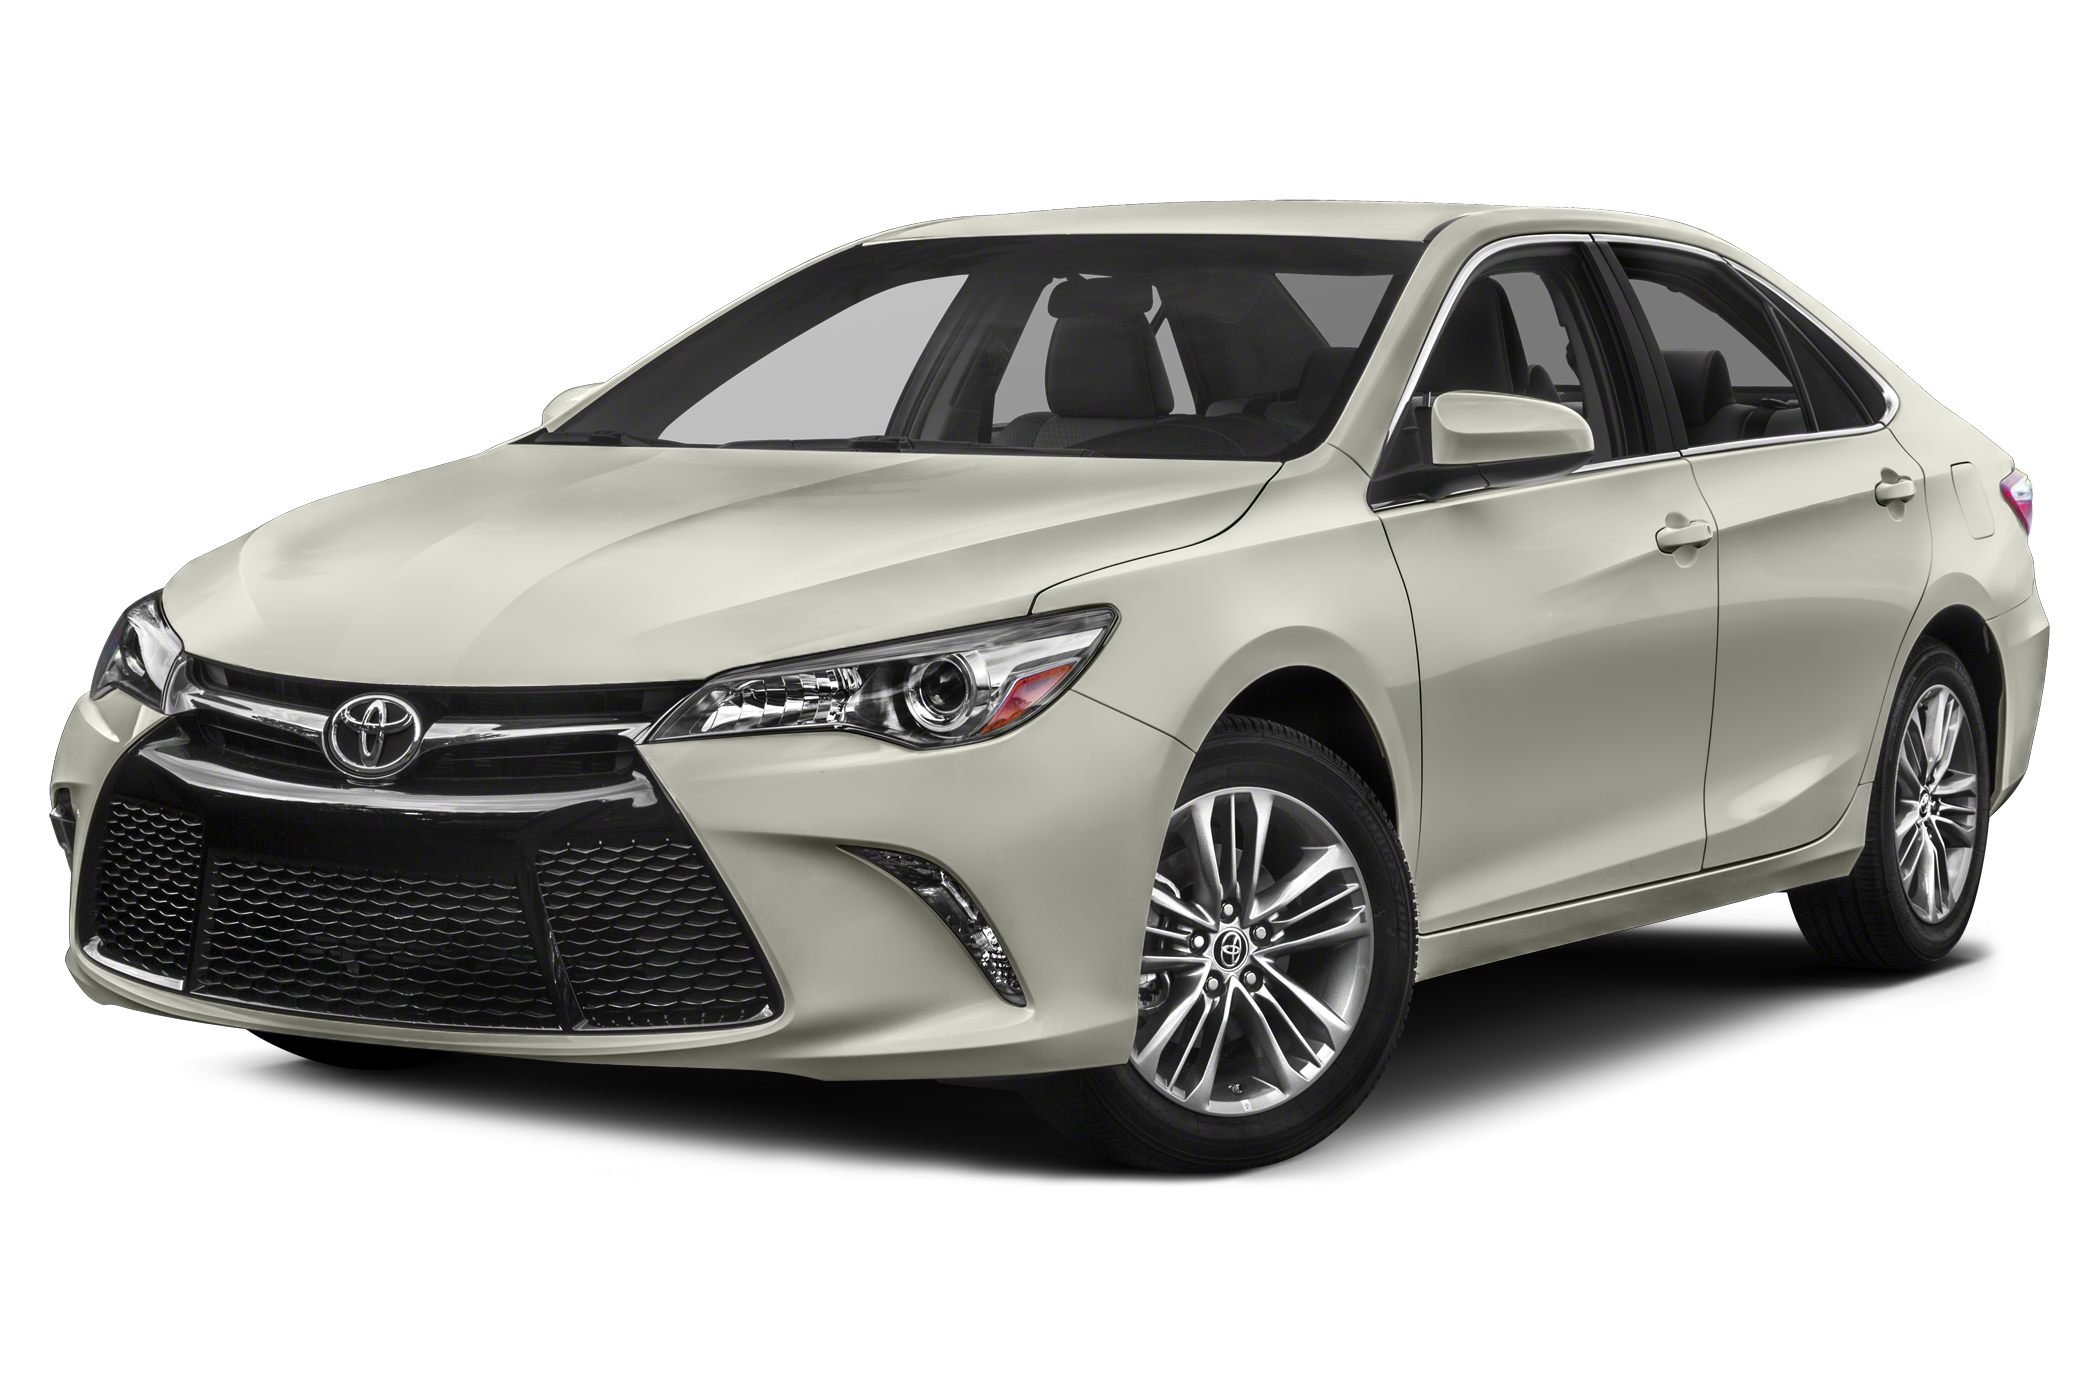 2015 Toyota Camry SE Sedan for sale in Chicago for $25,580 with 0 miles